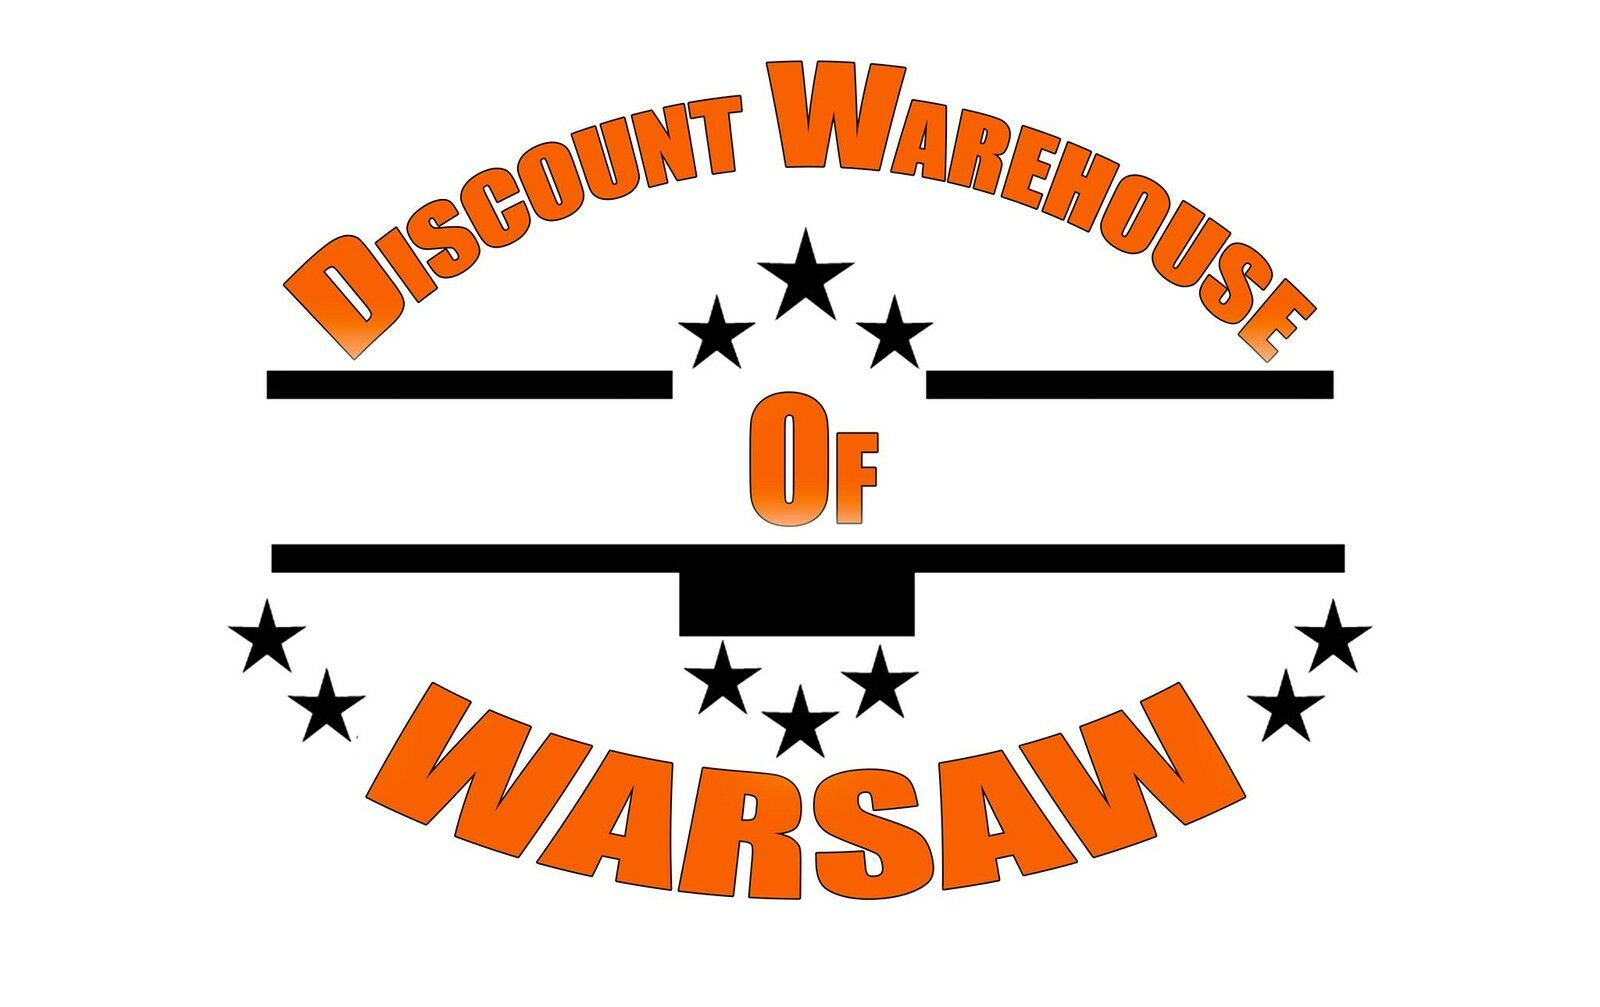 Discount Warehouse of Warsaw